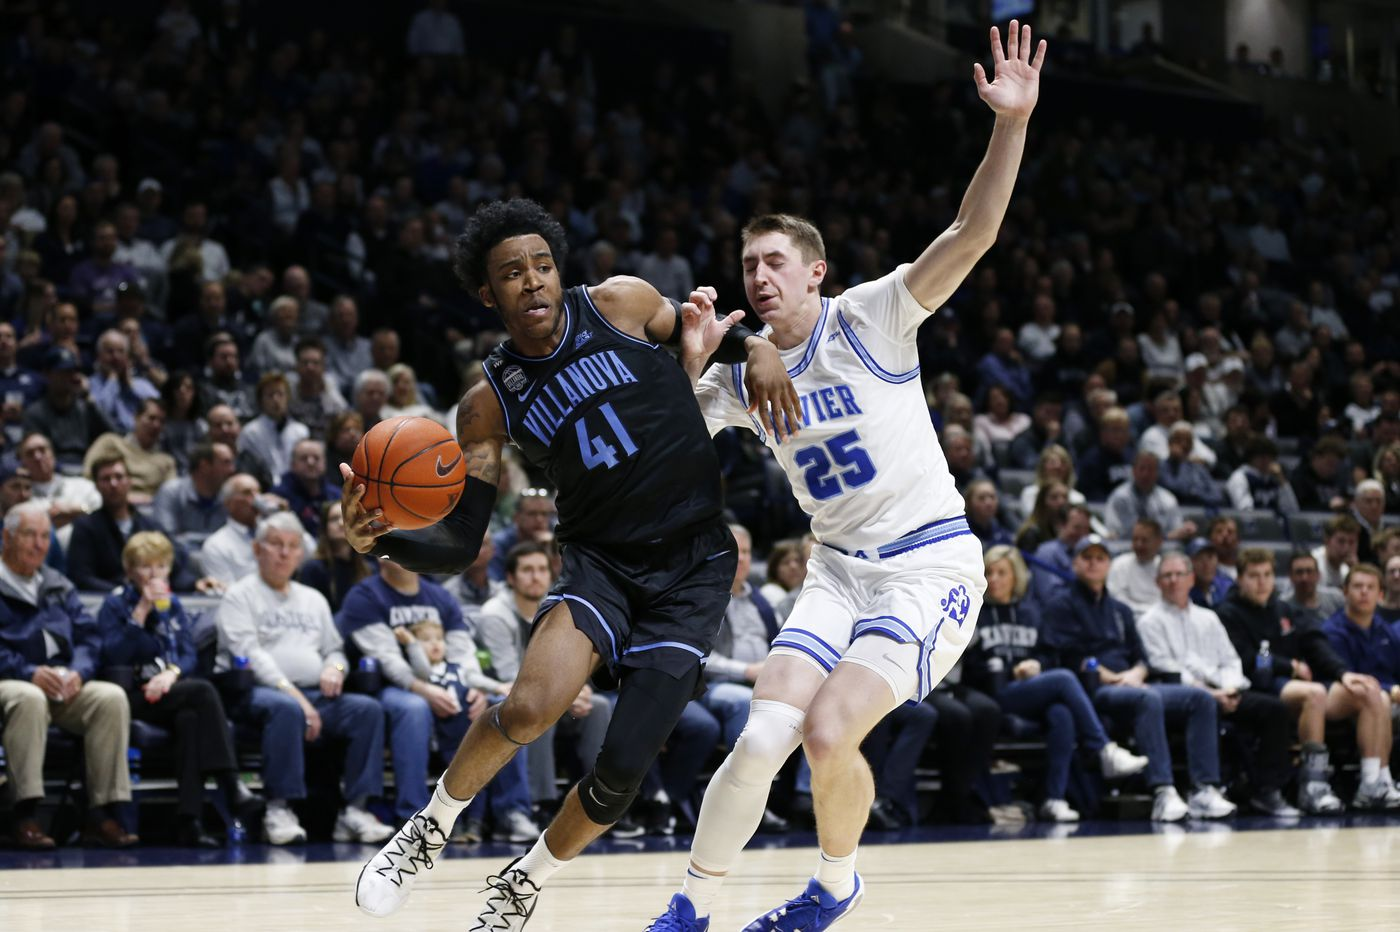 Villanova 64, Xavier 55: Stats, highlights and reaction from the Wildcats' fourth straight win